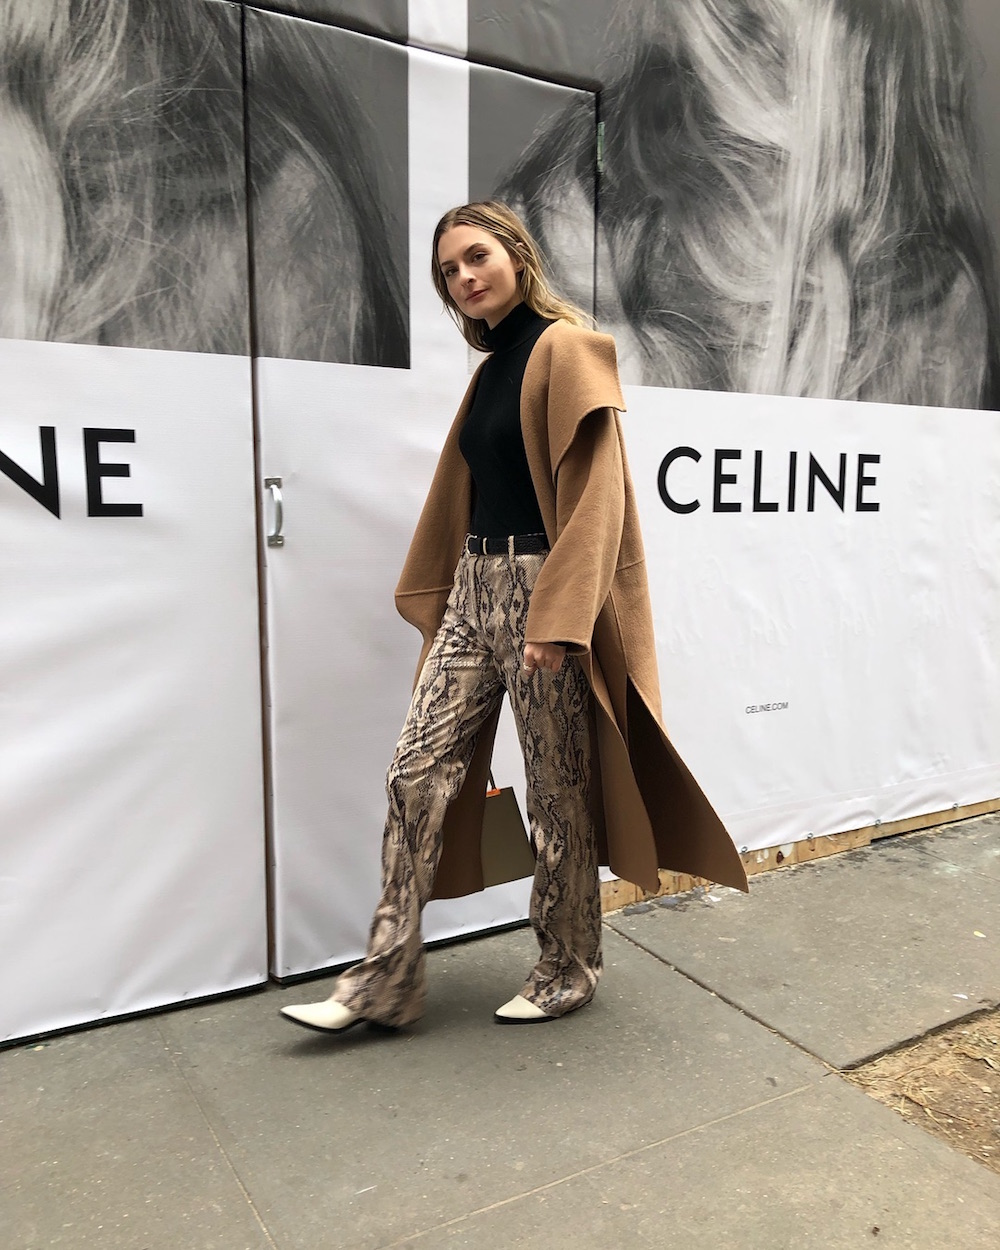 c4677d3db5a Top Fashion Bloggers on Instagram to Follow in 2019 - theFashionSpot